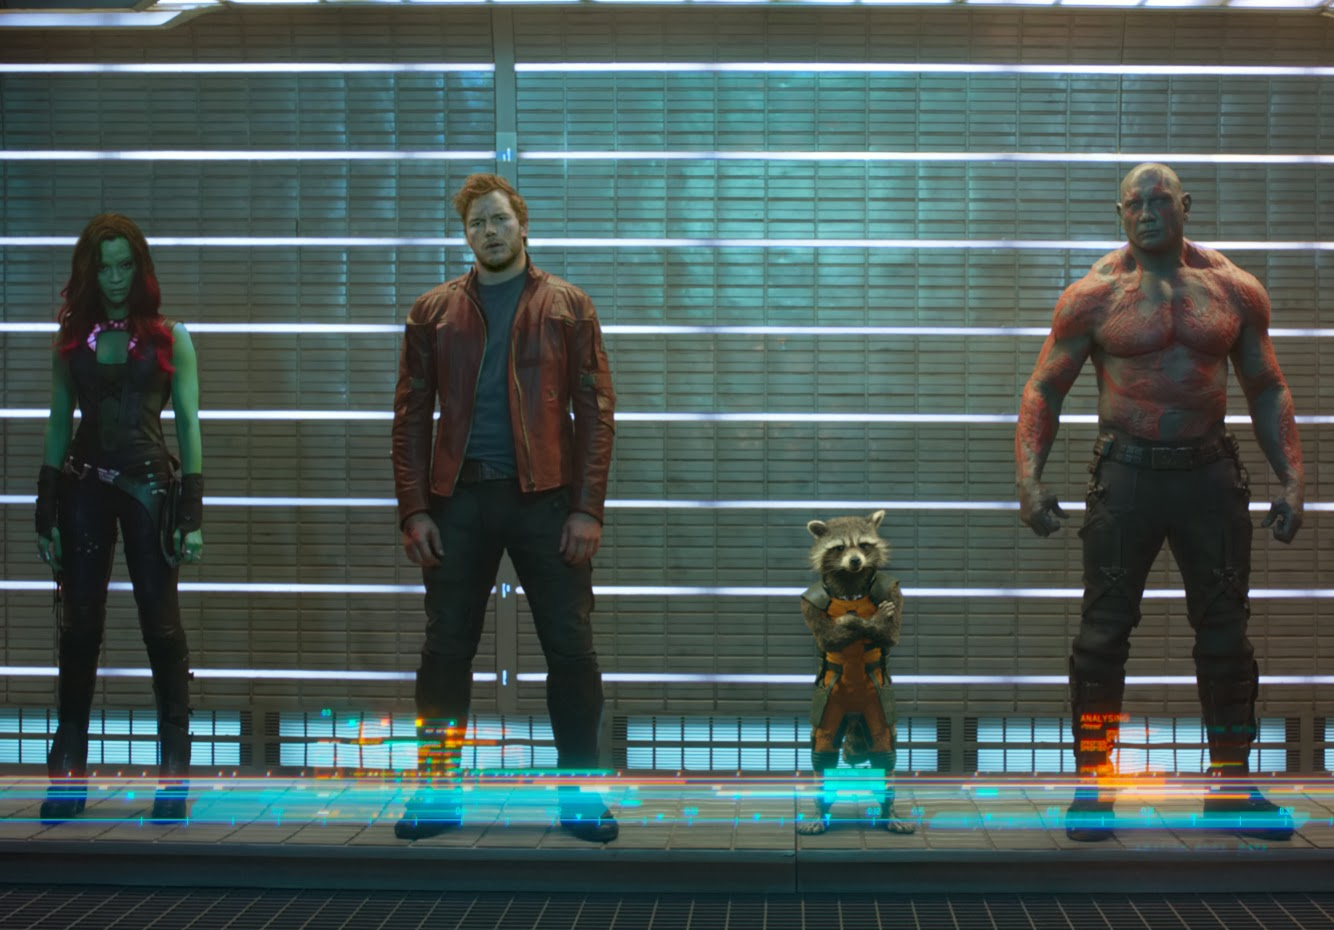 Guardians of the Galaxy: First Official Image & Synopsis